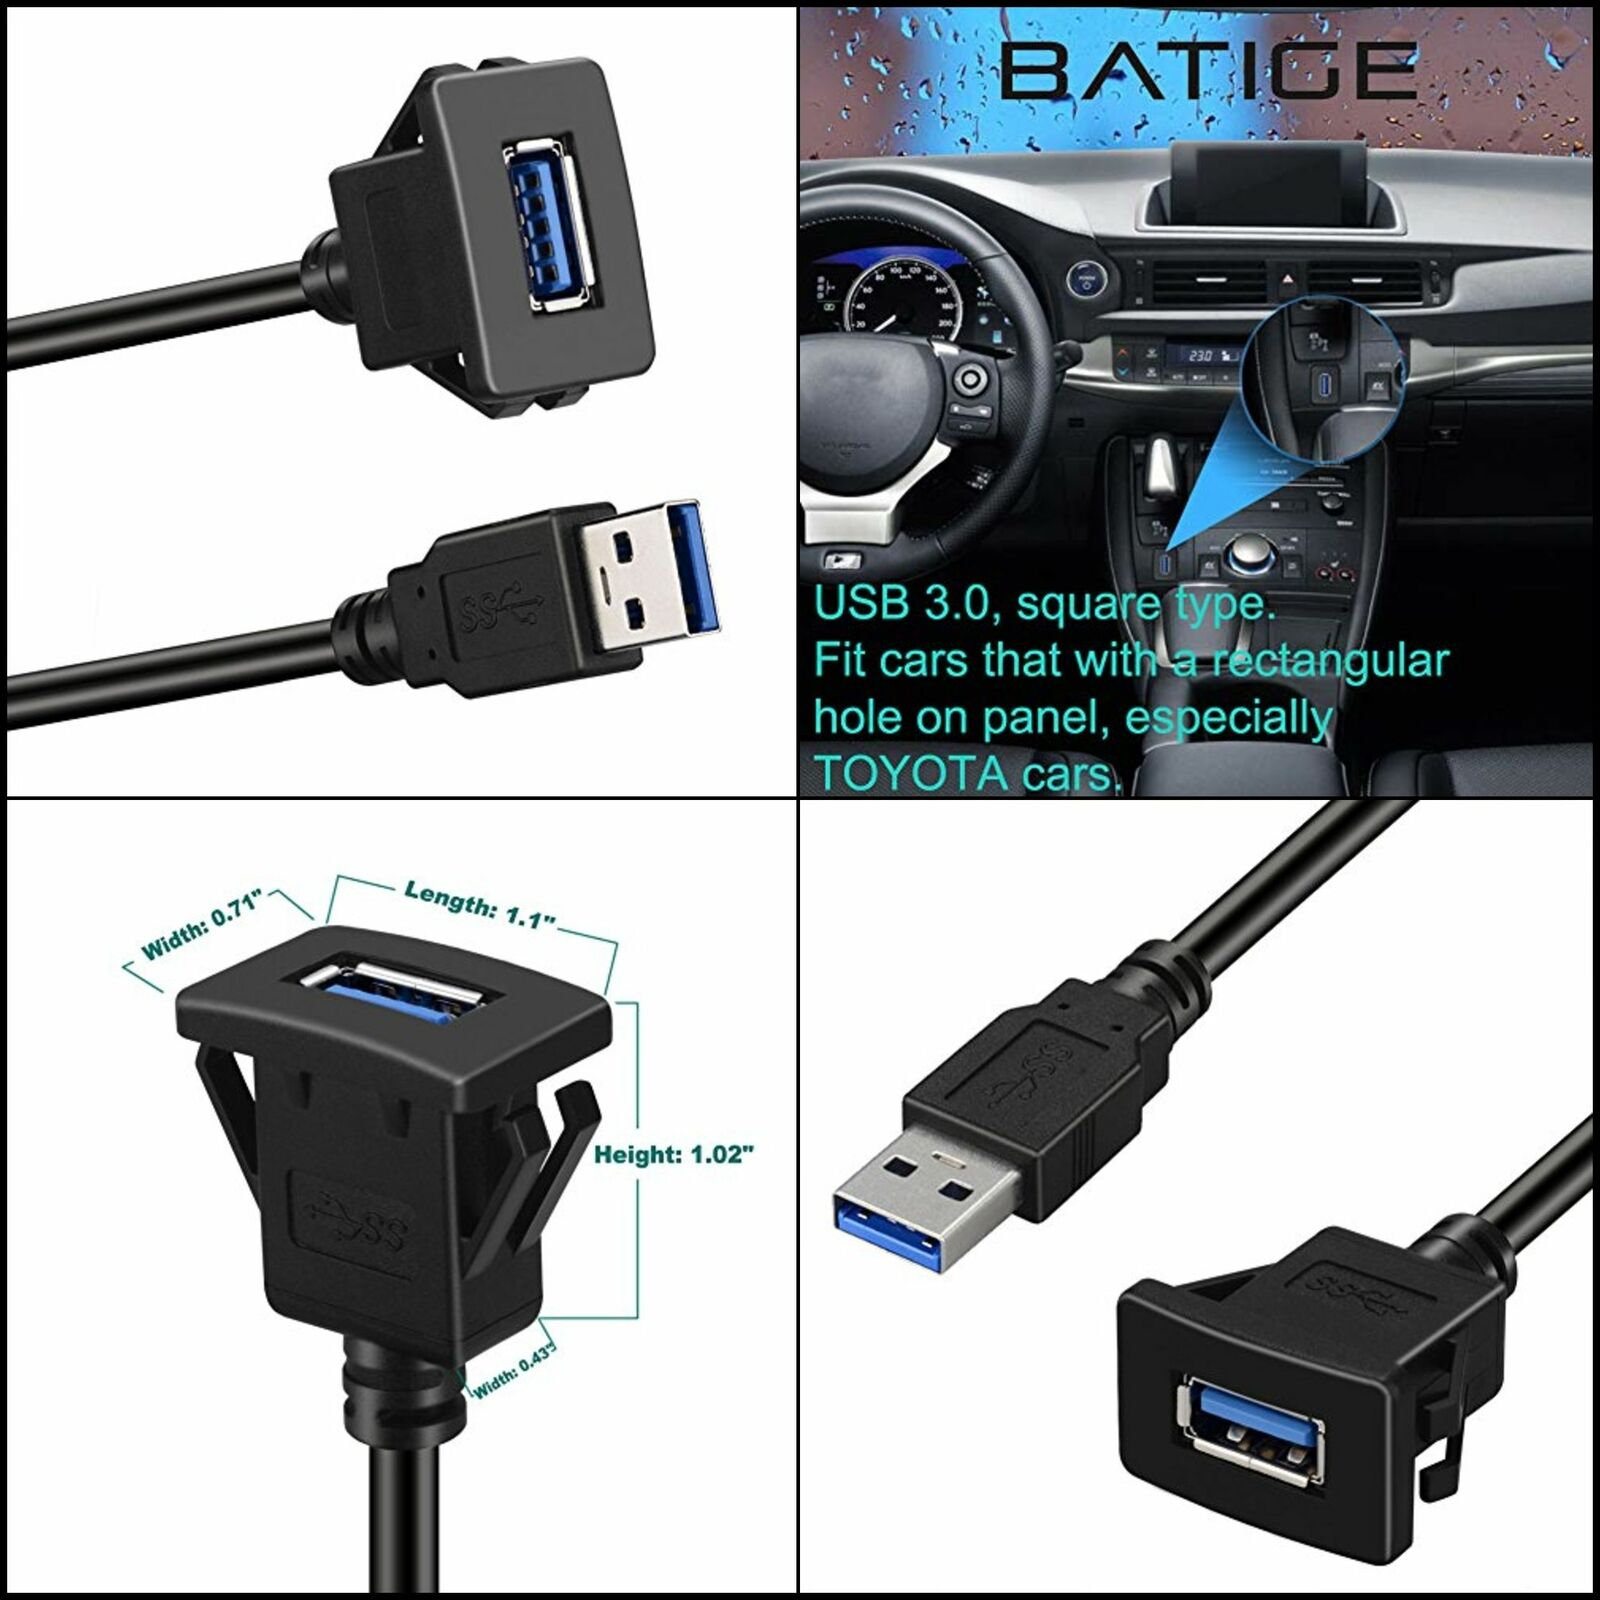 3ft BATIGE Type C 3.0 Female to USB 3.0 A Male and USB 3.0 A Male to Female Dual Port Car Mount Flush Cable Waterproof Extension for Car Truck Boat Motorcycle Dashboard Panel